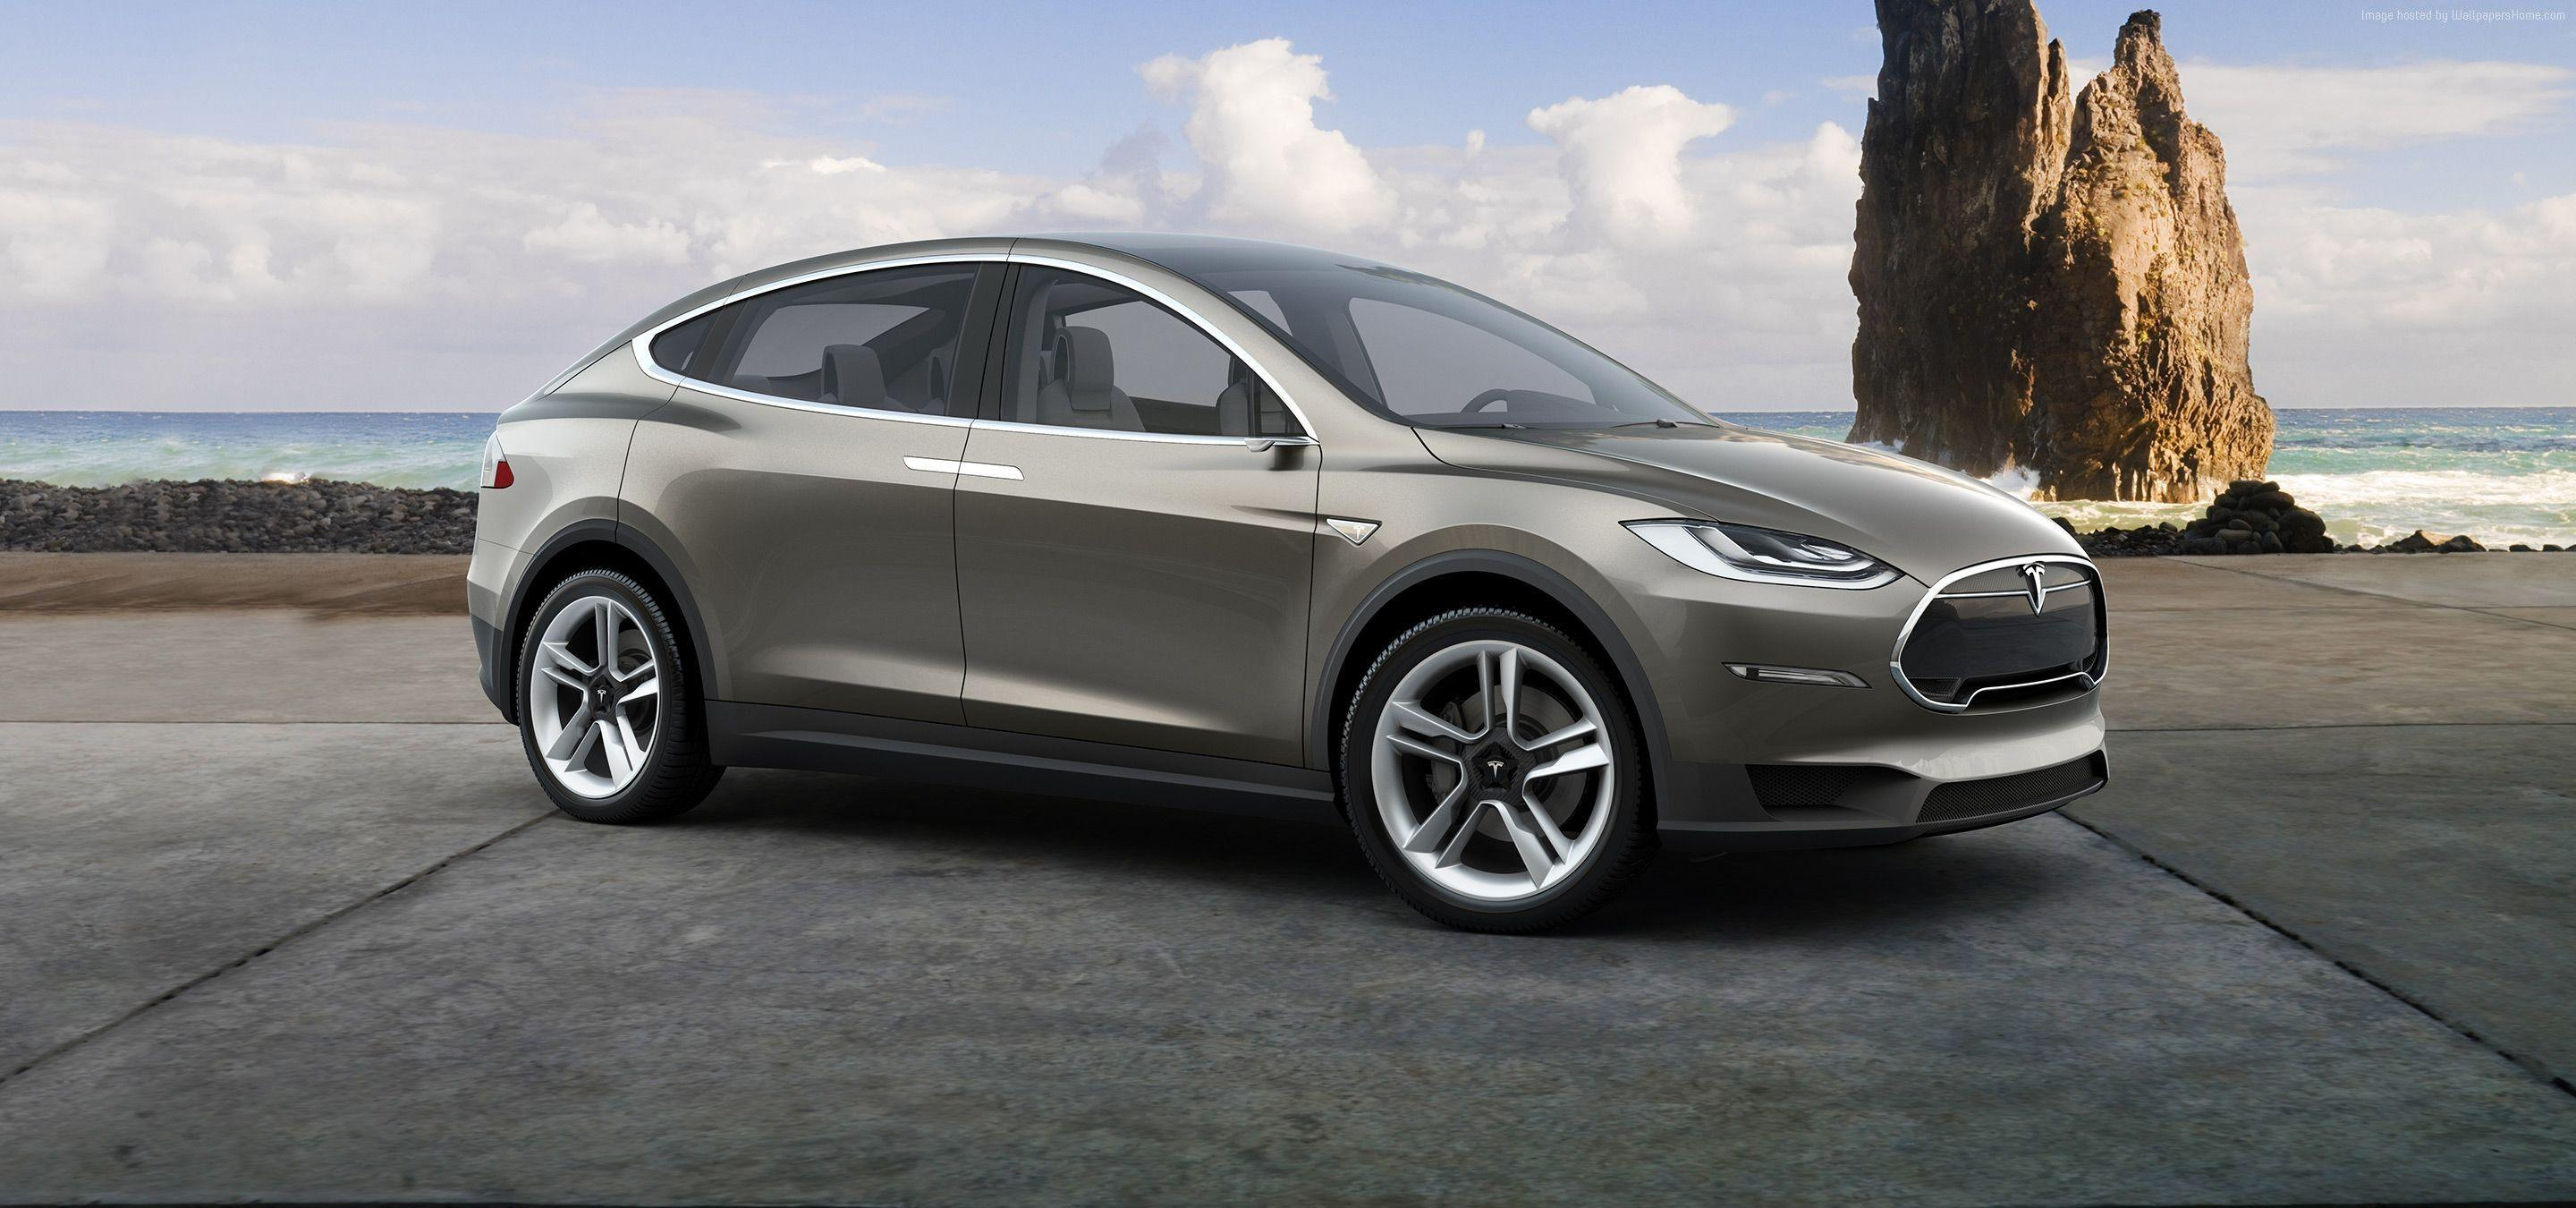 Wallpapers Tesla model x, electric cars, suv, 2016, Cars & Bikes